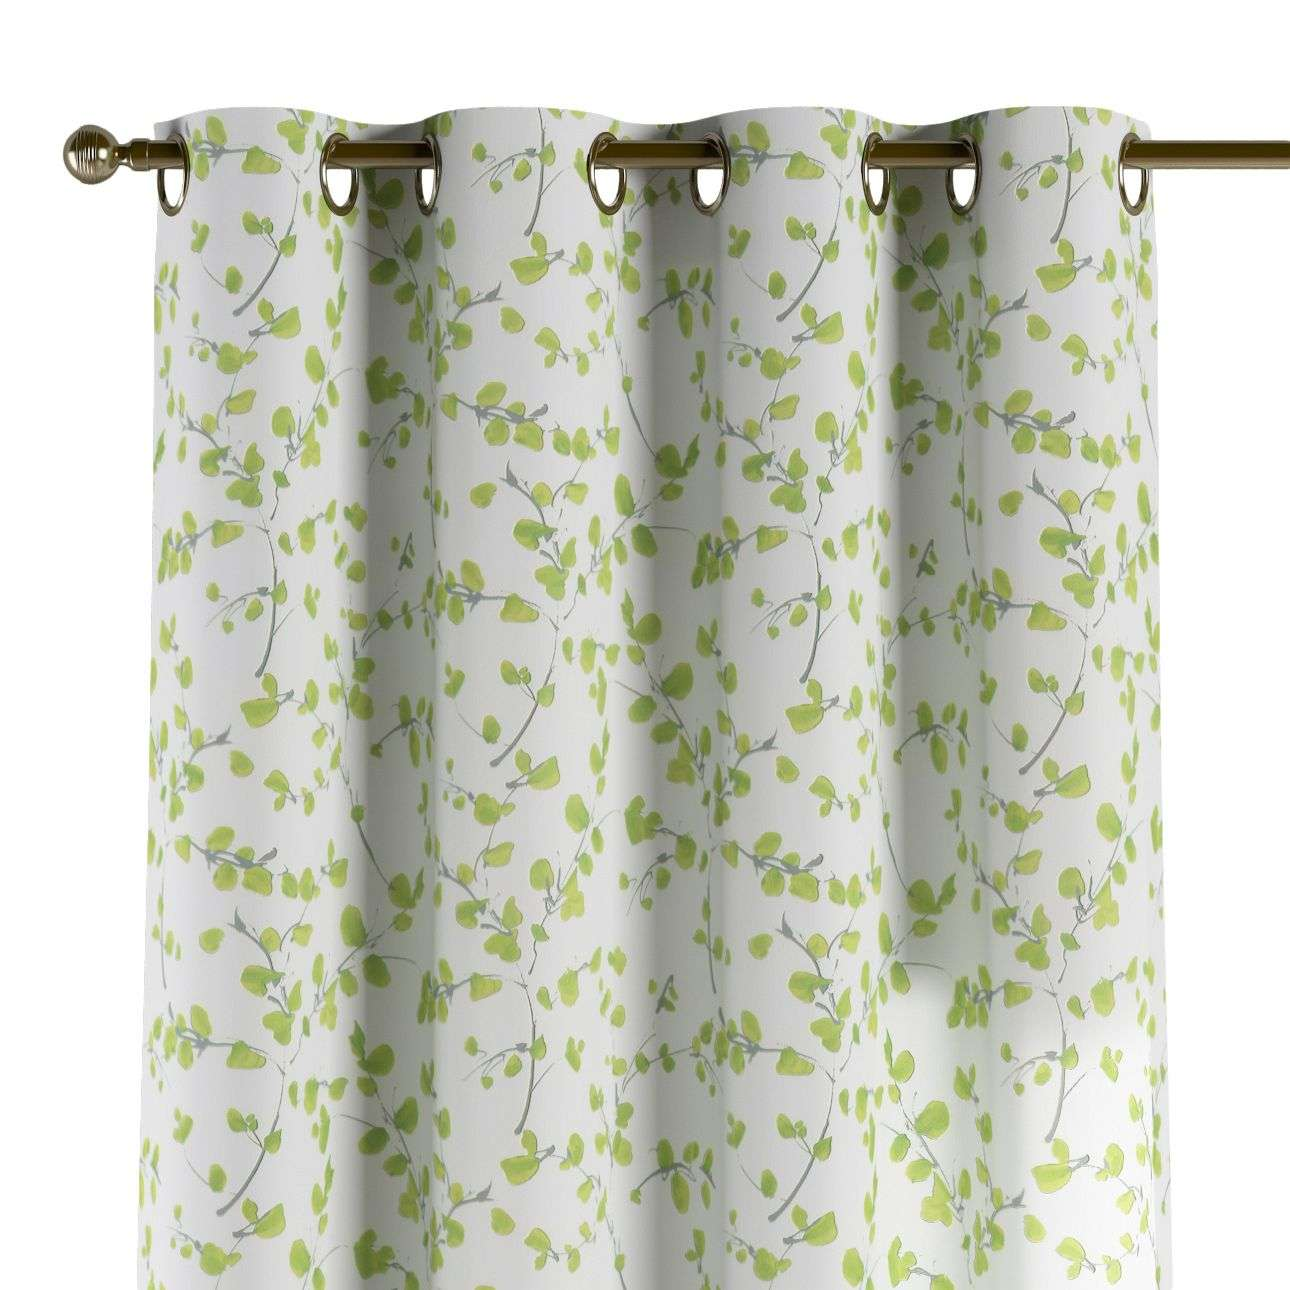 Eyelet curtains 130 x 260 cm (51 x 102 inch) in collection Aquarelle, fabric: 140-76